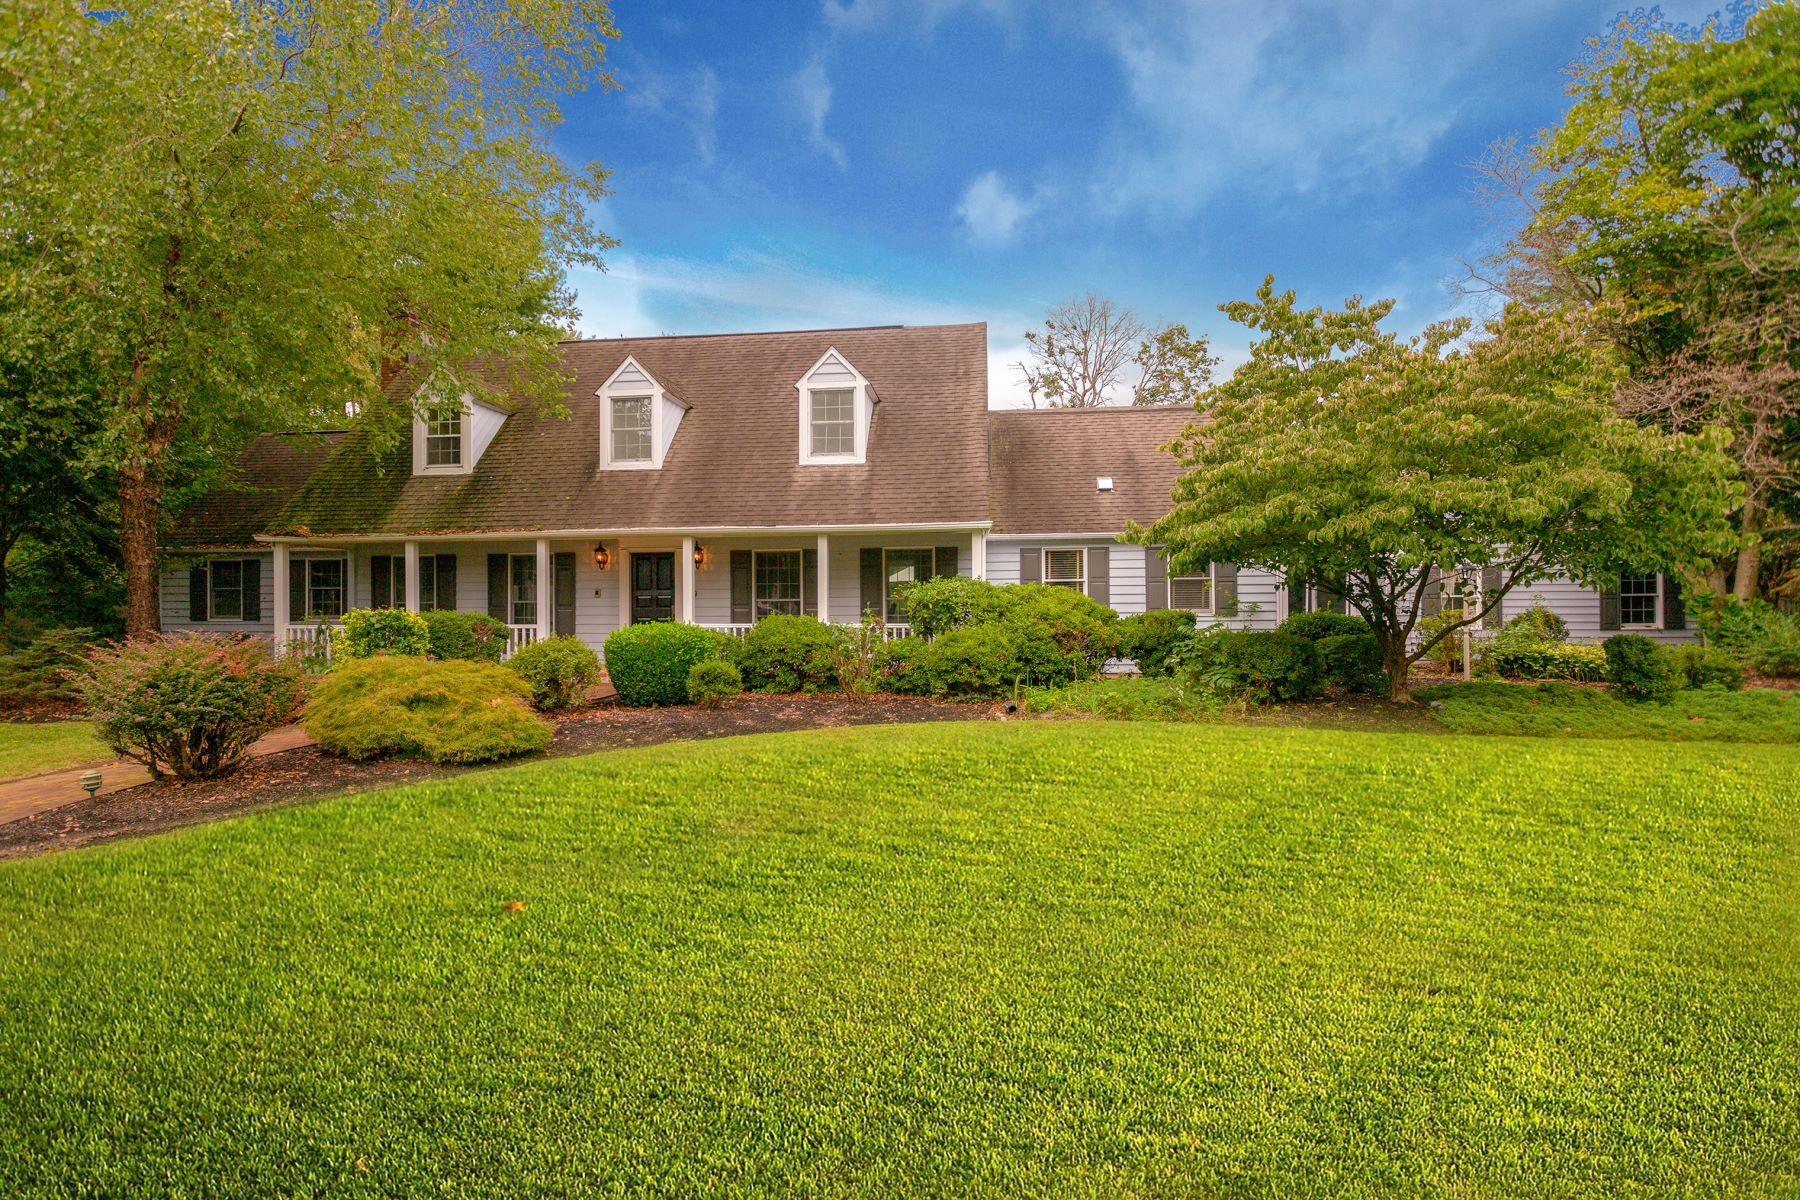 Single Family Homes for Sale at 19 MILYKO DR Washington Crossing, Pennsylvania 18977 United States